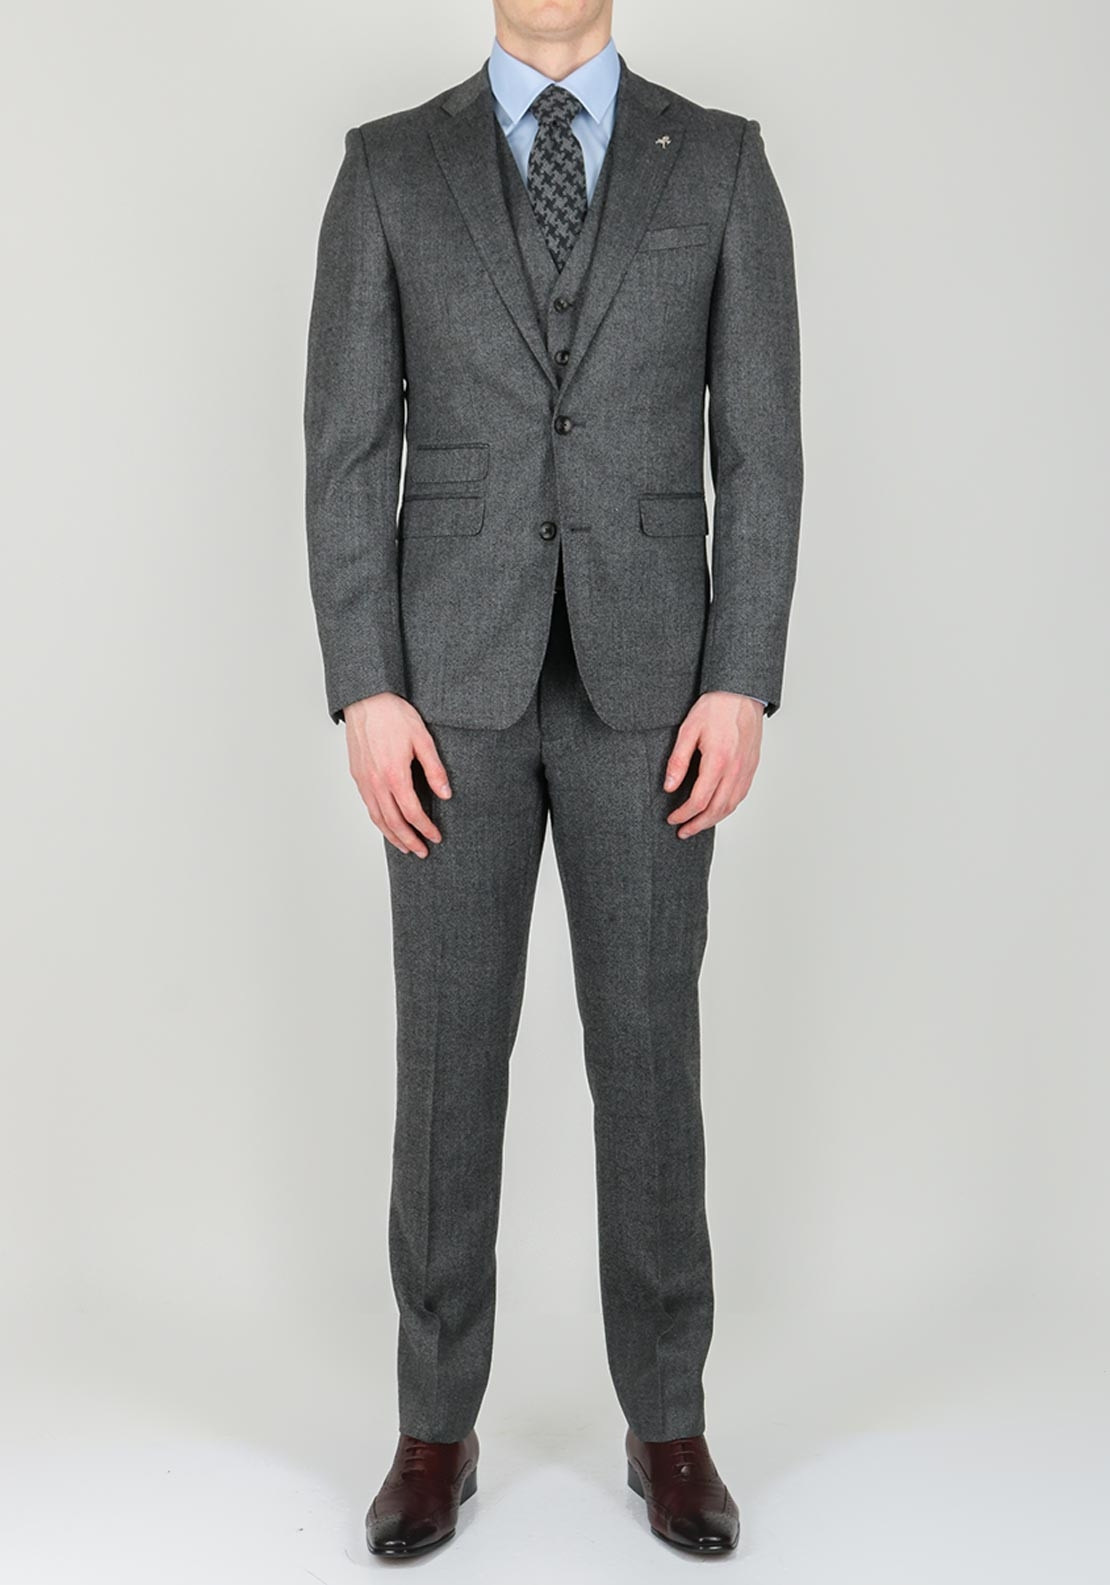 Herbie Frogg Tweed Grey 3 Piece Suit Mcelhinneys